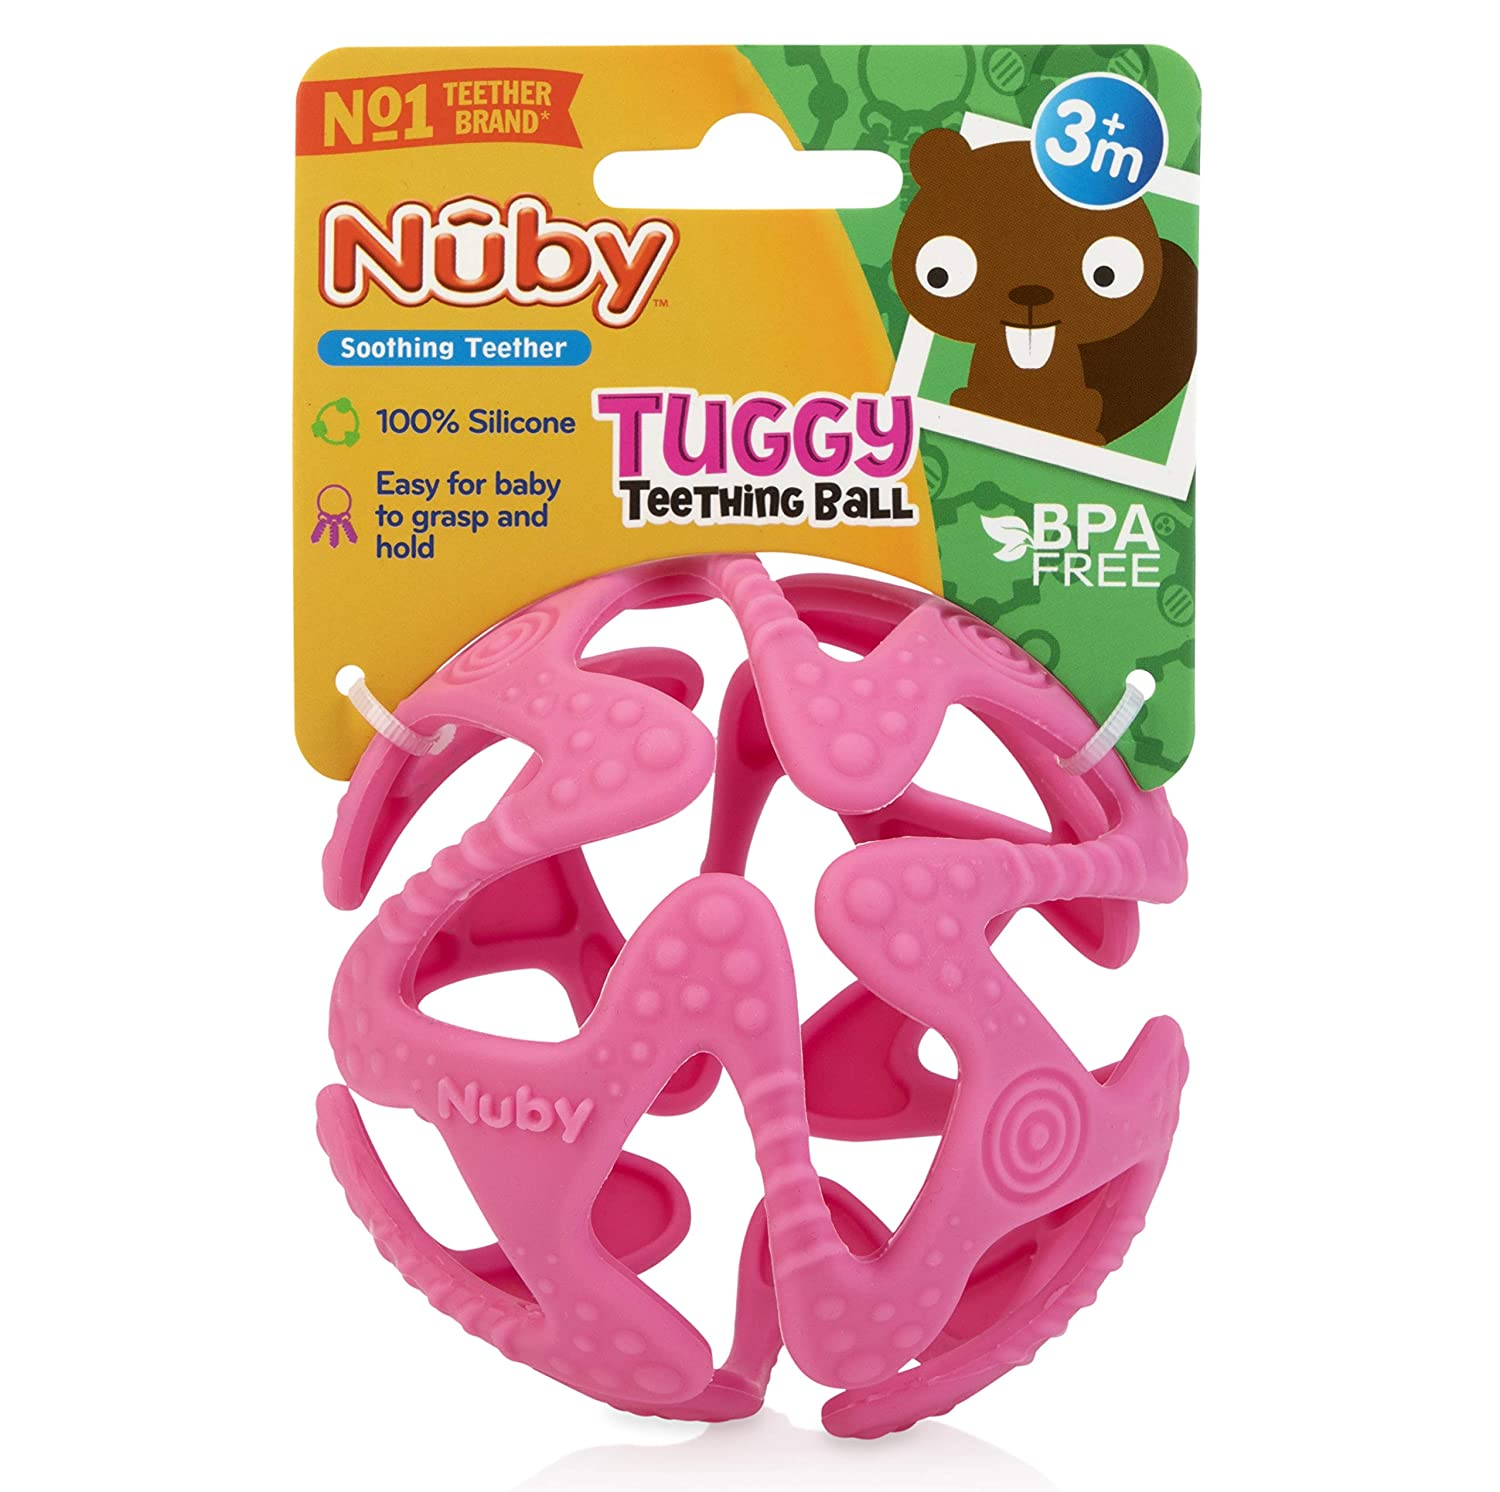 6836 3 Months + Nuby 100/% Silicone Tuggy Teether Ball Colors May Vary Unique Look Inc